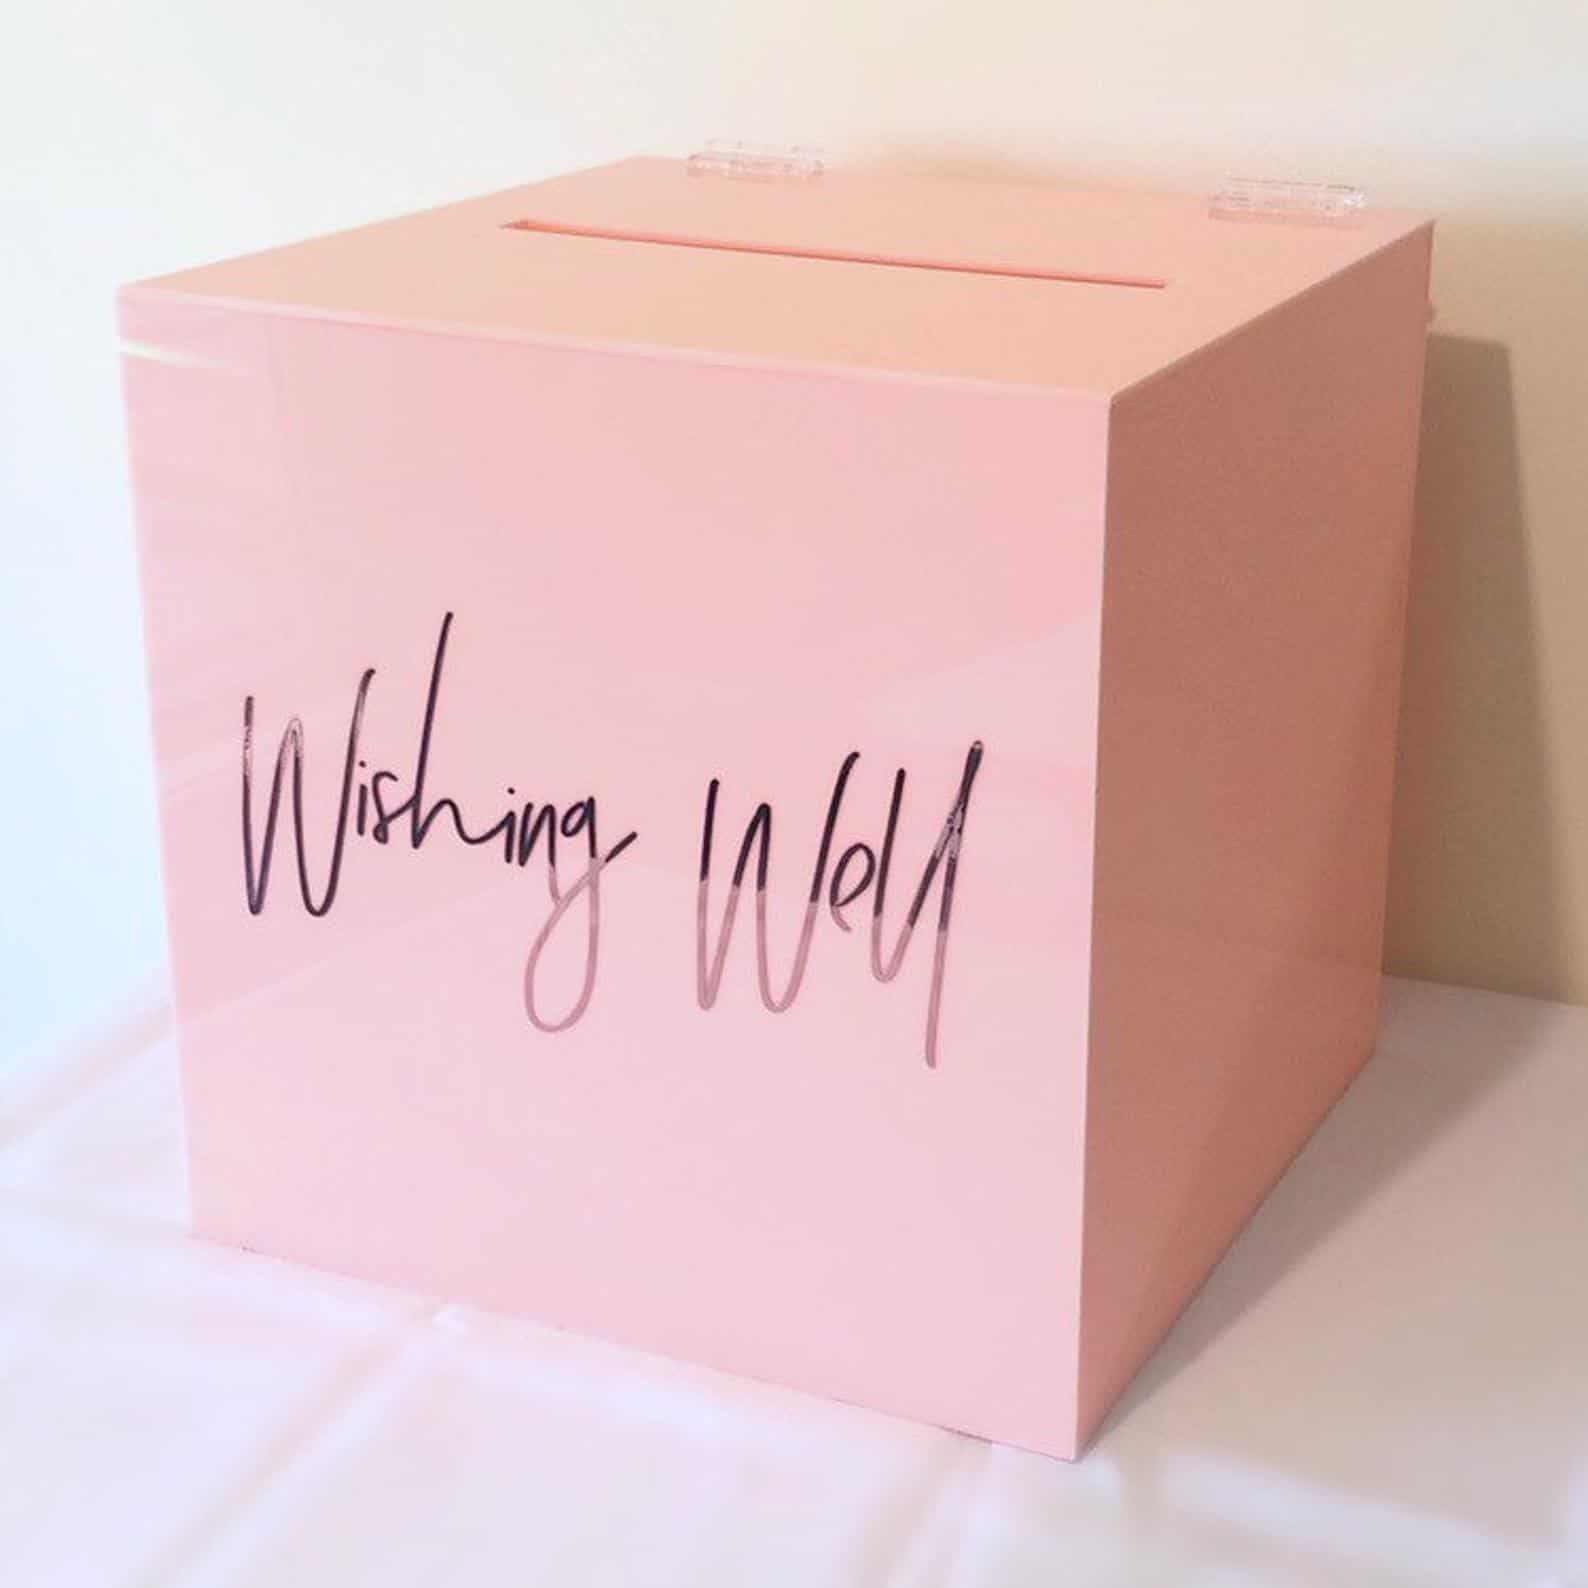 Wishing well - acrylic pink - 1 available